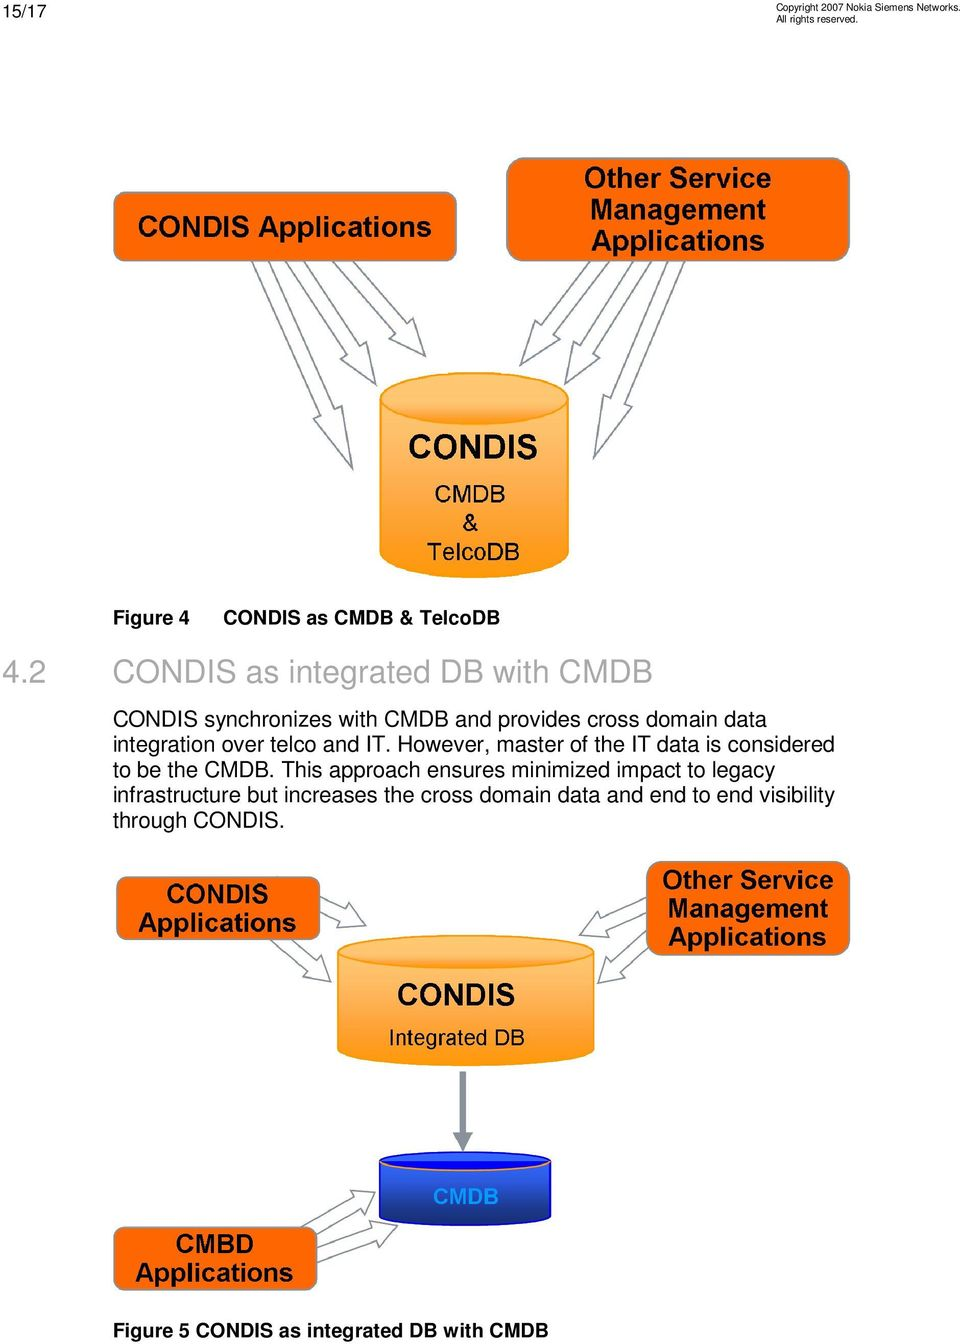 integration over telco and IT. However, master of the IT data is considered to be the CMDB.